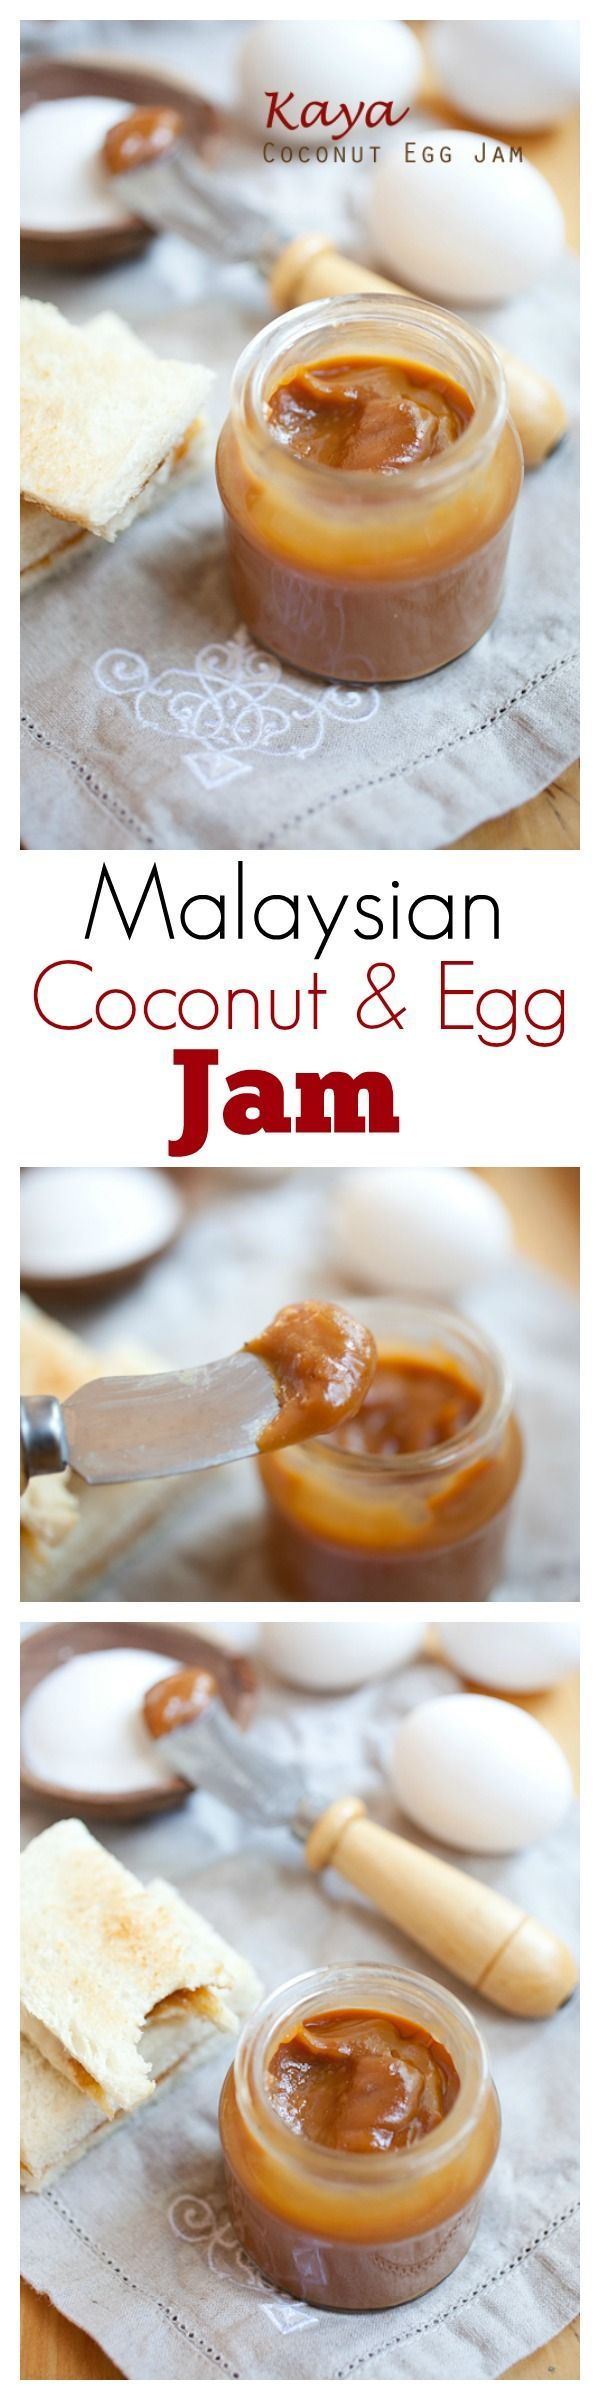 Kaya is a delicious Malaysian jam made with coconut, eggs and caramel. Rich and aromatic jam which is perfect for toast and a cup of coffee | rasamalaysia.com